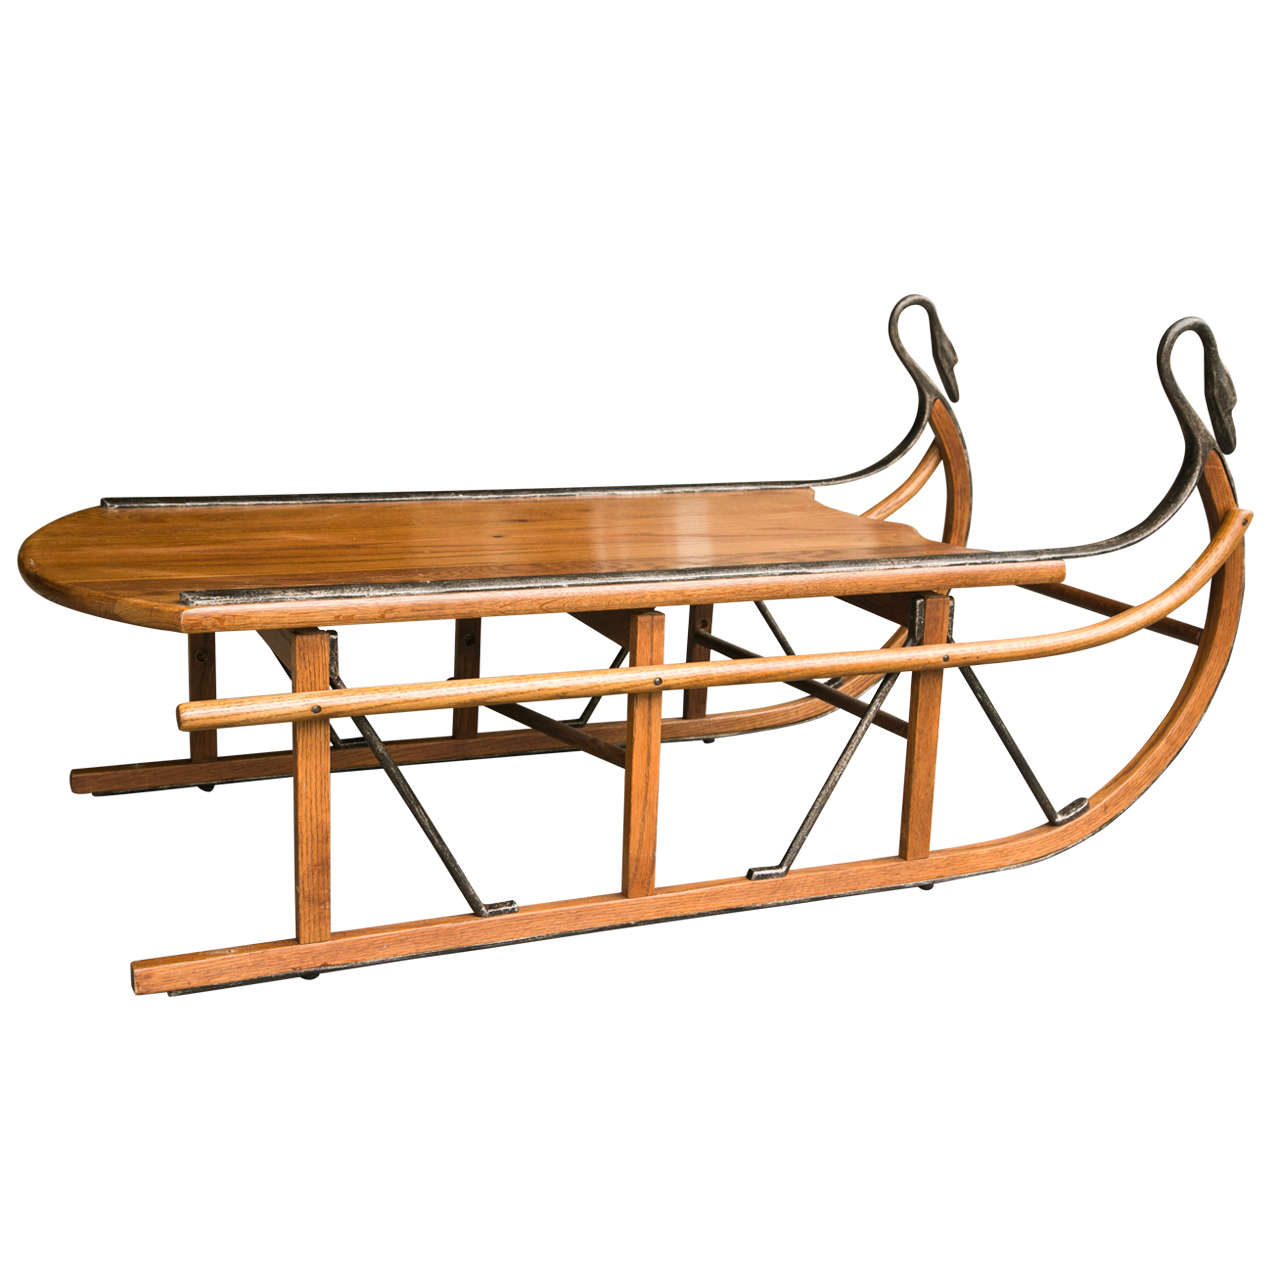 Unusual Coffee Table In The Form Of A Sled For At 1stdibs